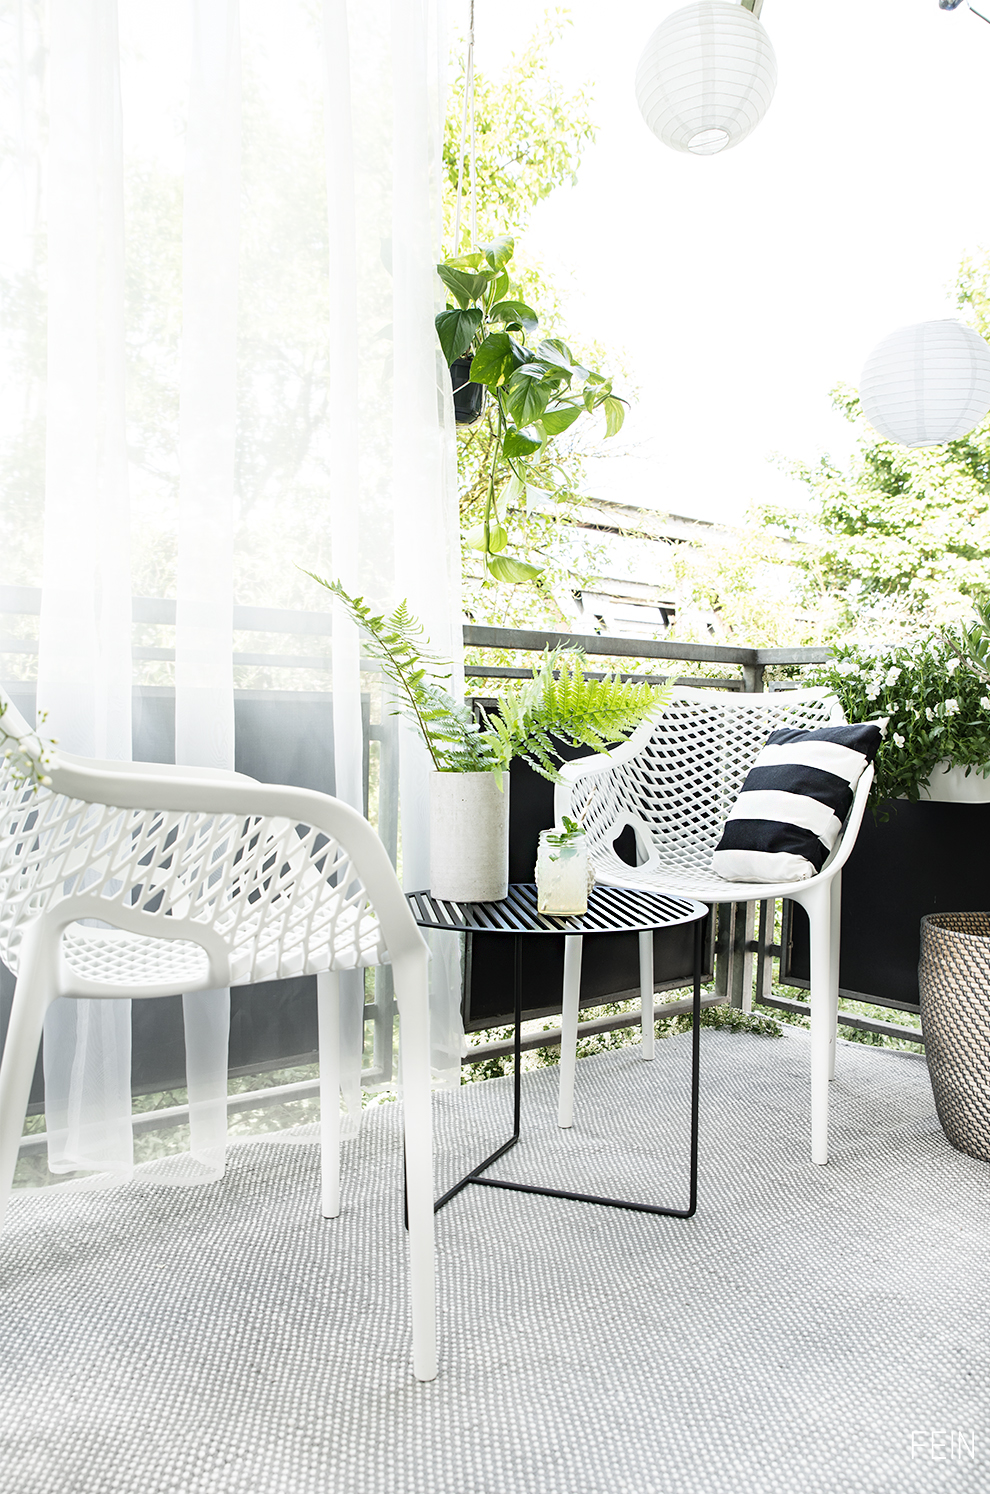 Balkon Outdoor Teppich Tisch Möbel Black and white